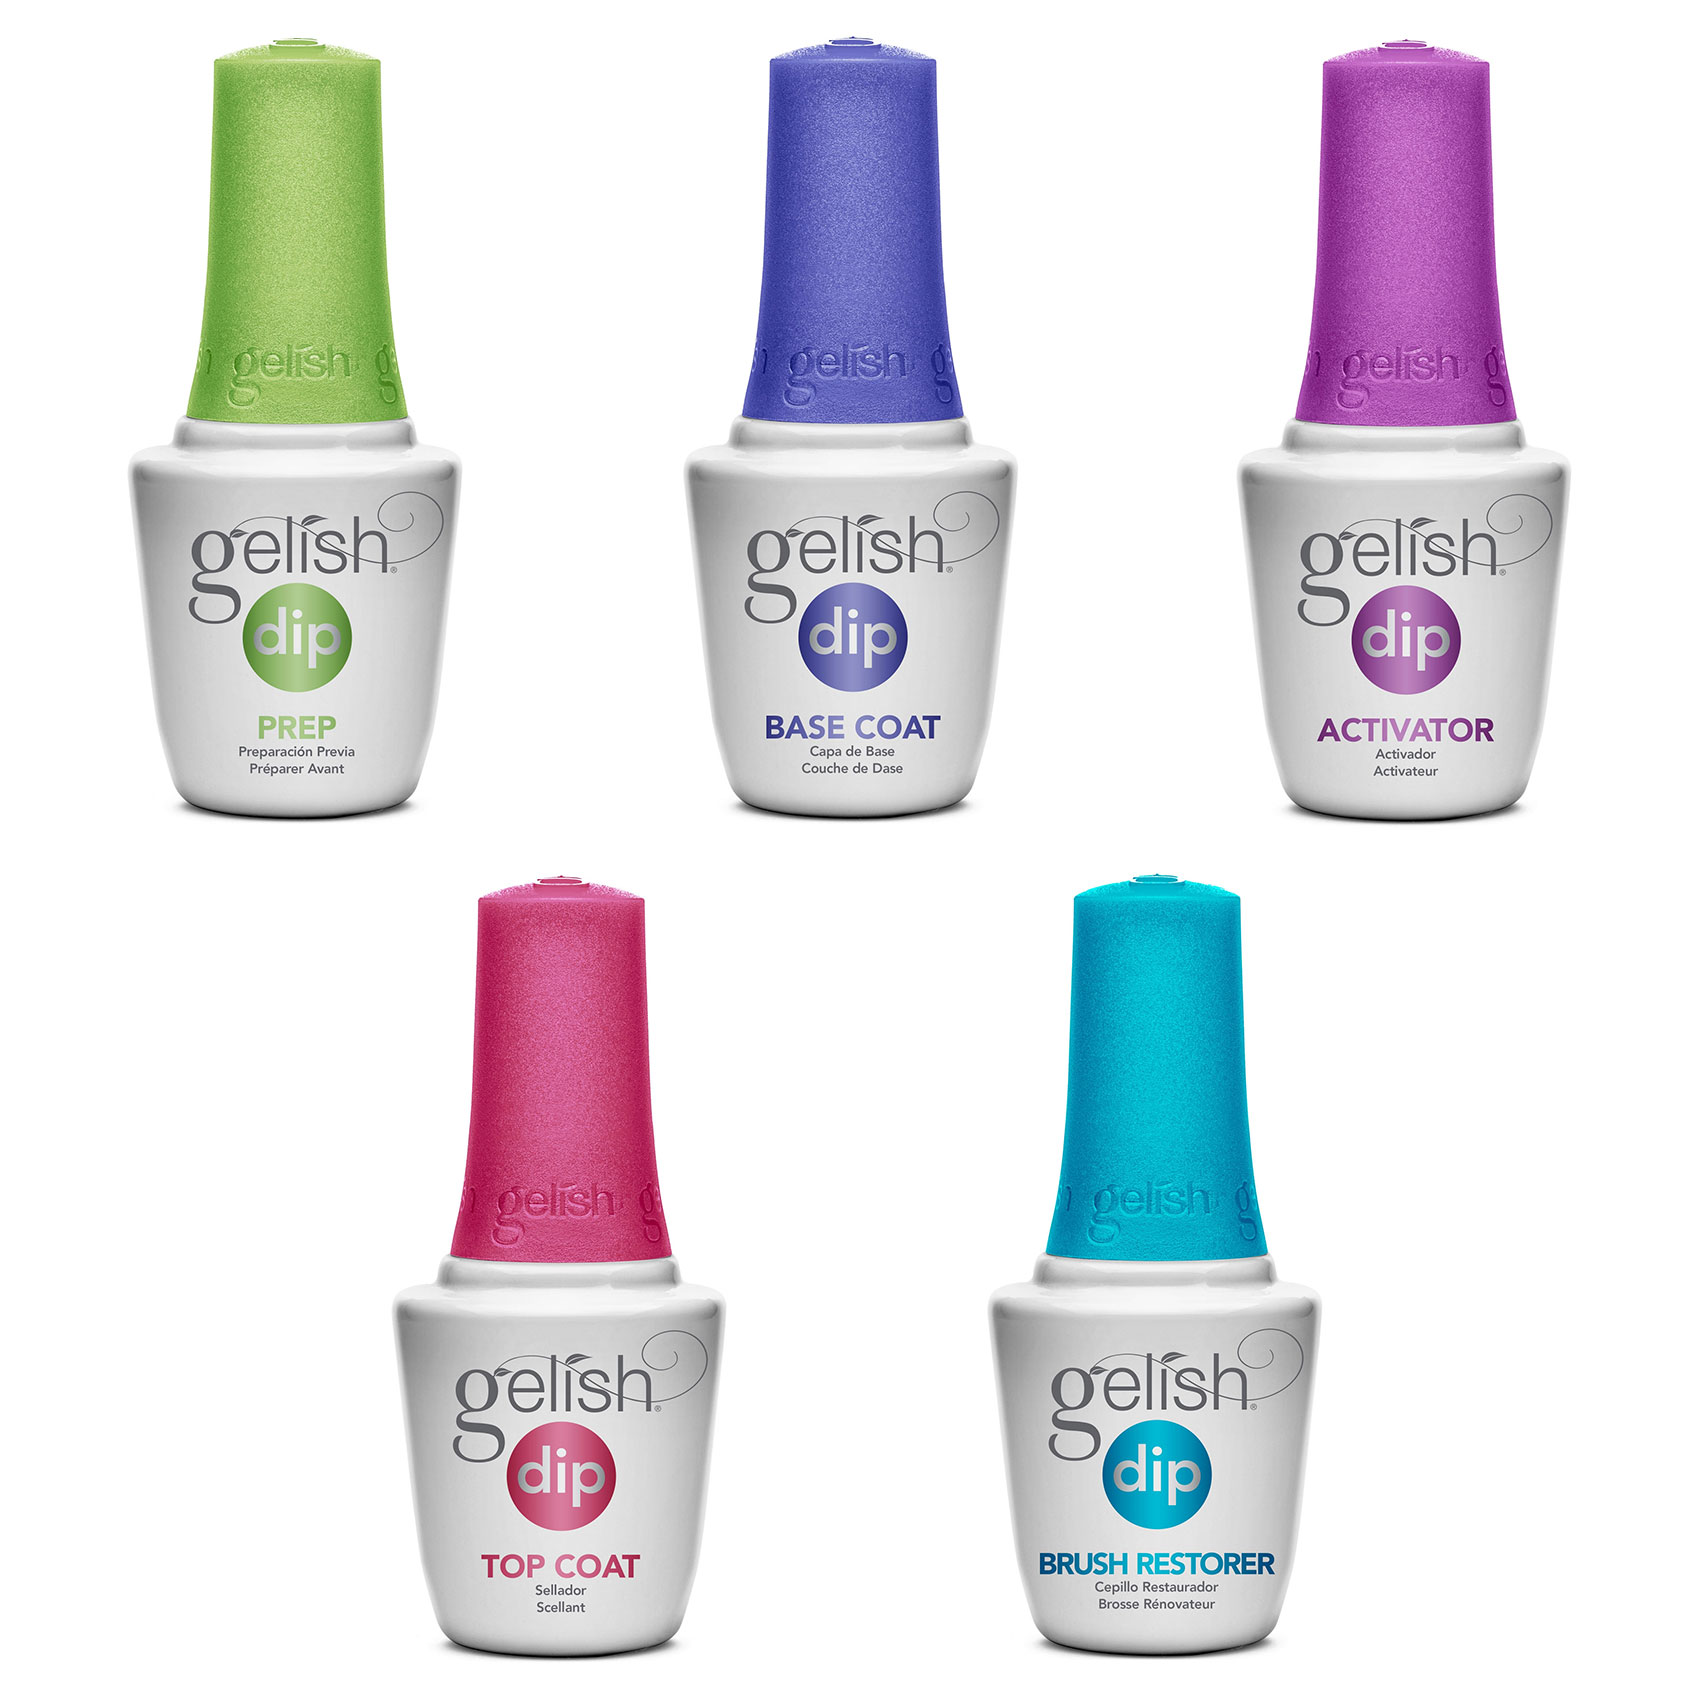 Gelish Soak Off French Tip Acrylic Powder Nail Polish Dip System ...